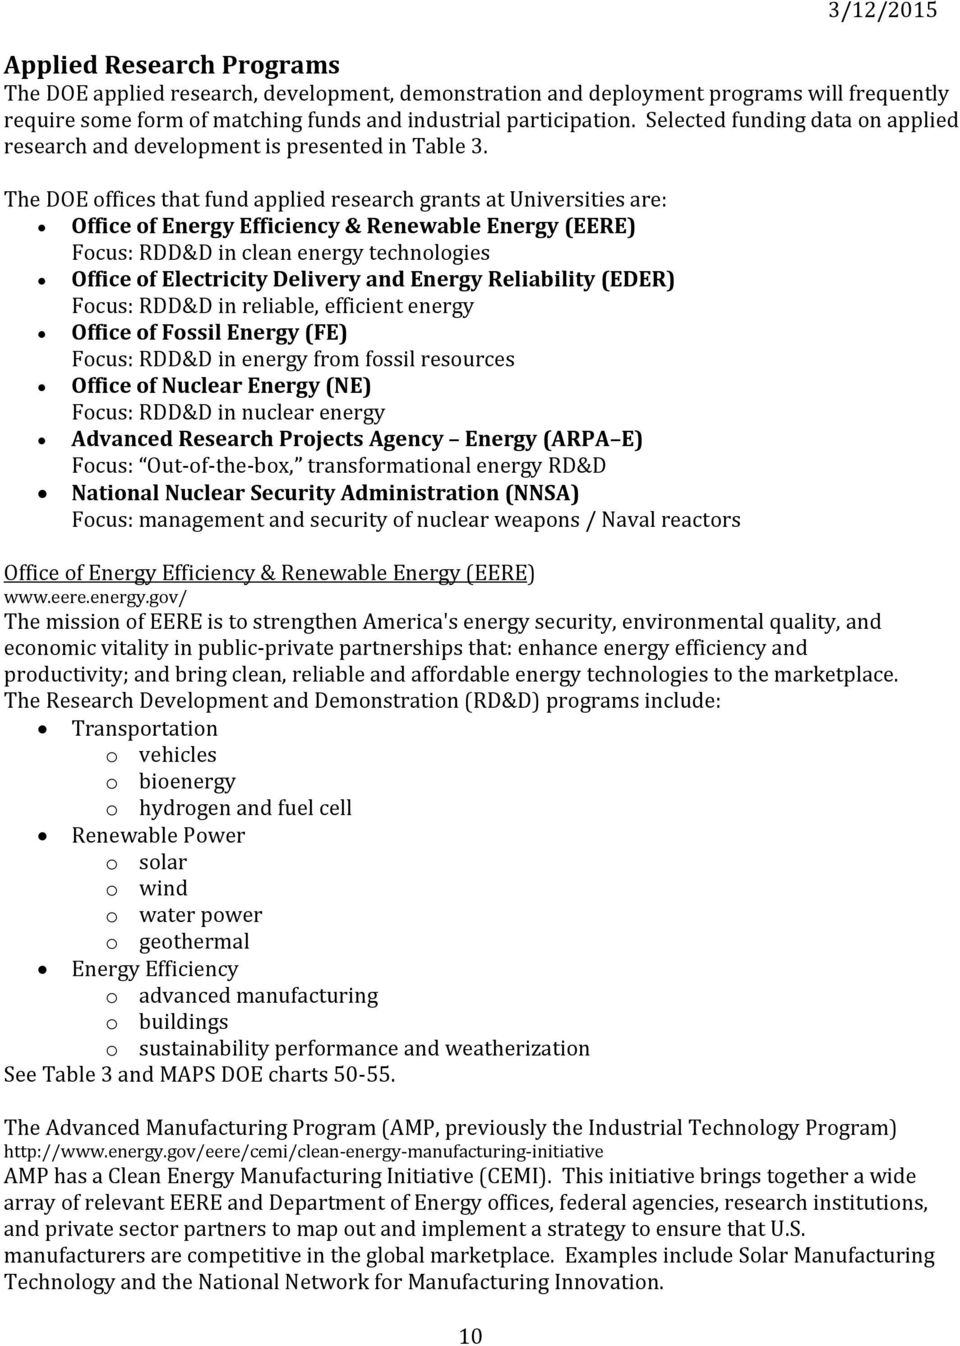 The DOE offices that fund applied research grants at Universities are: Office of Energy Efficiency & Renewable Energy (EERE) Focus: RDD&D in clean energy technologies Office of Electricity Delivery